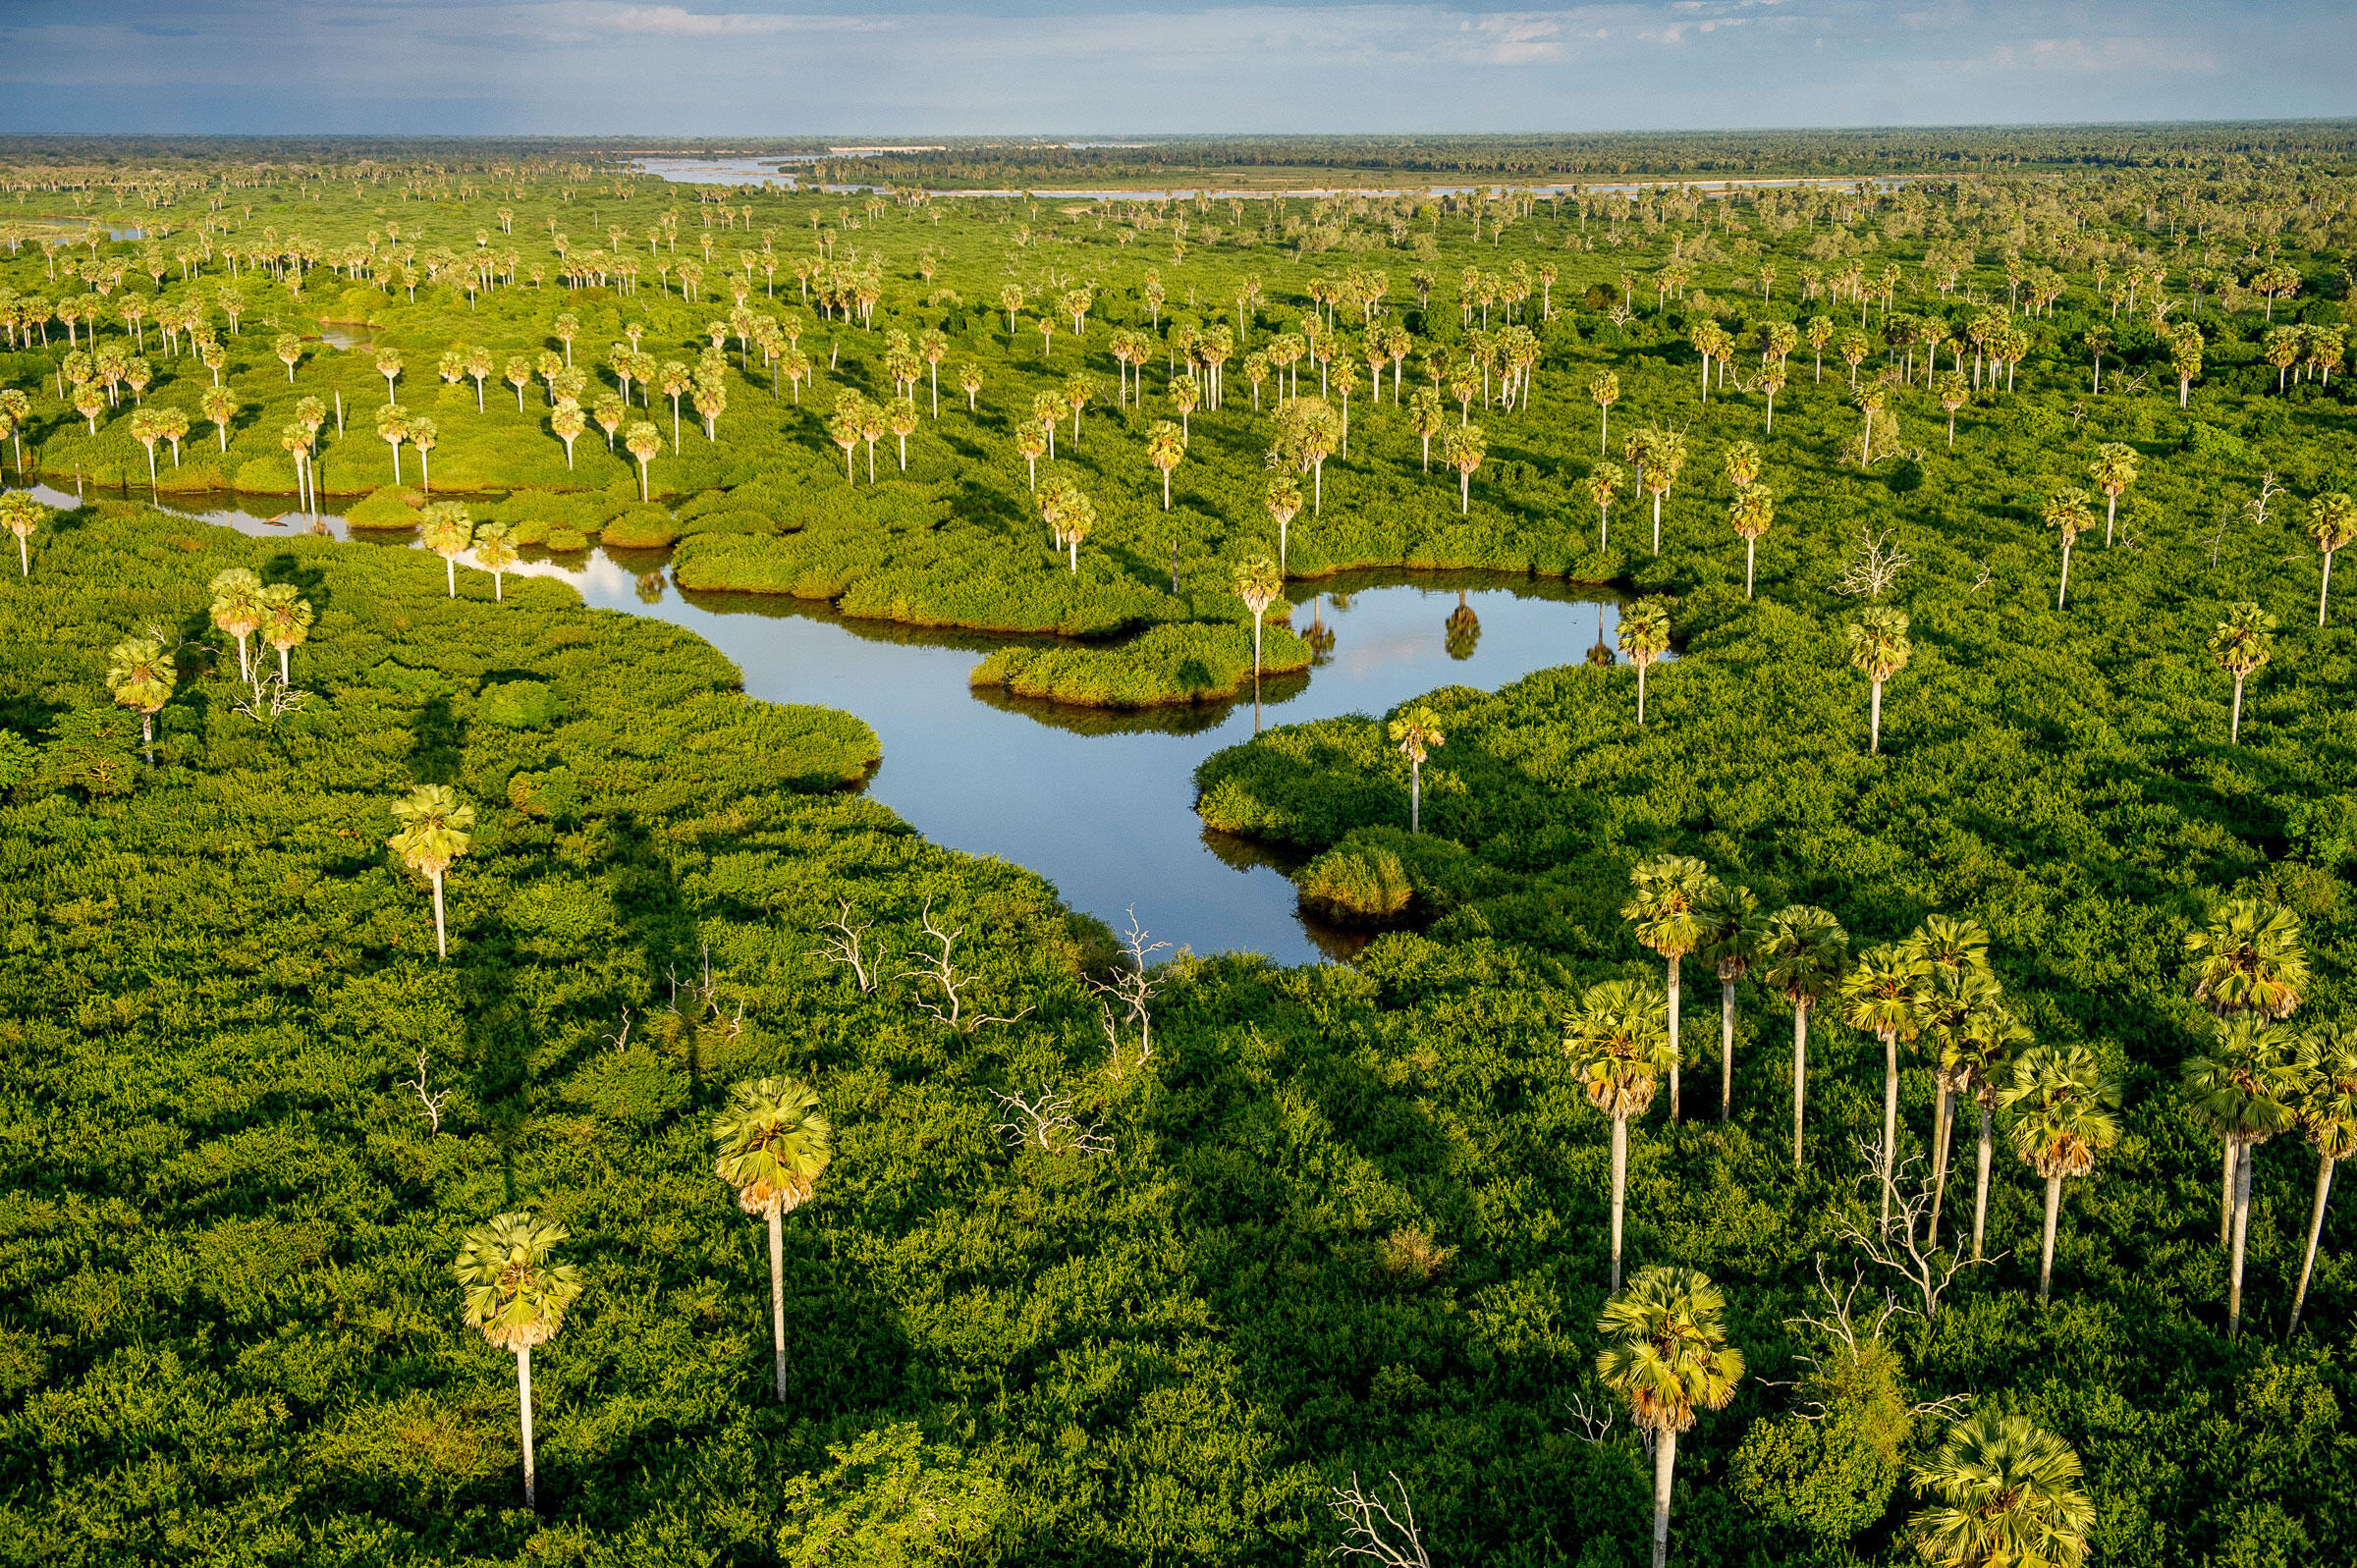 Stately Borassus palms rise from the swamps between the Rufiji River and the northern lakes. Robert J. Ross